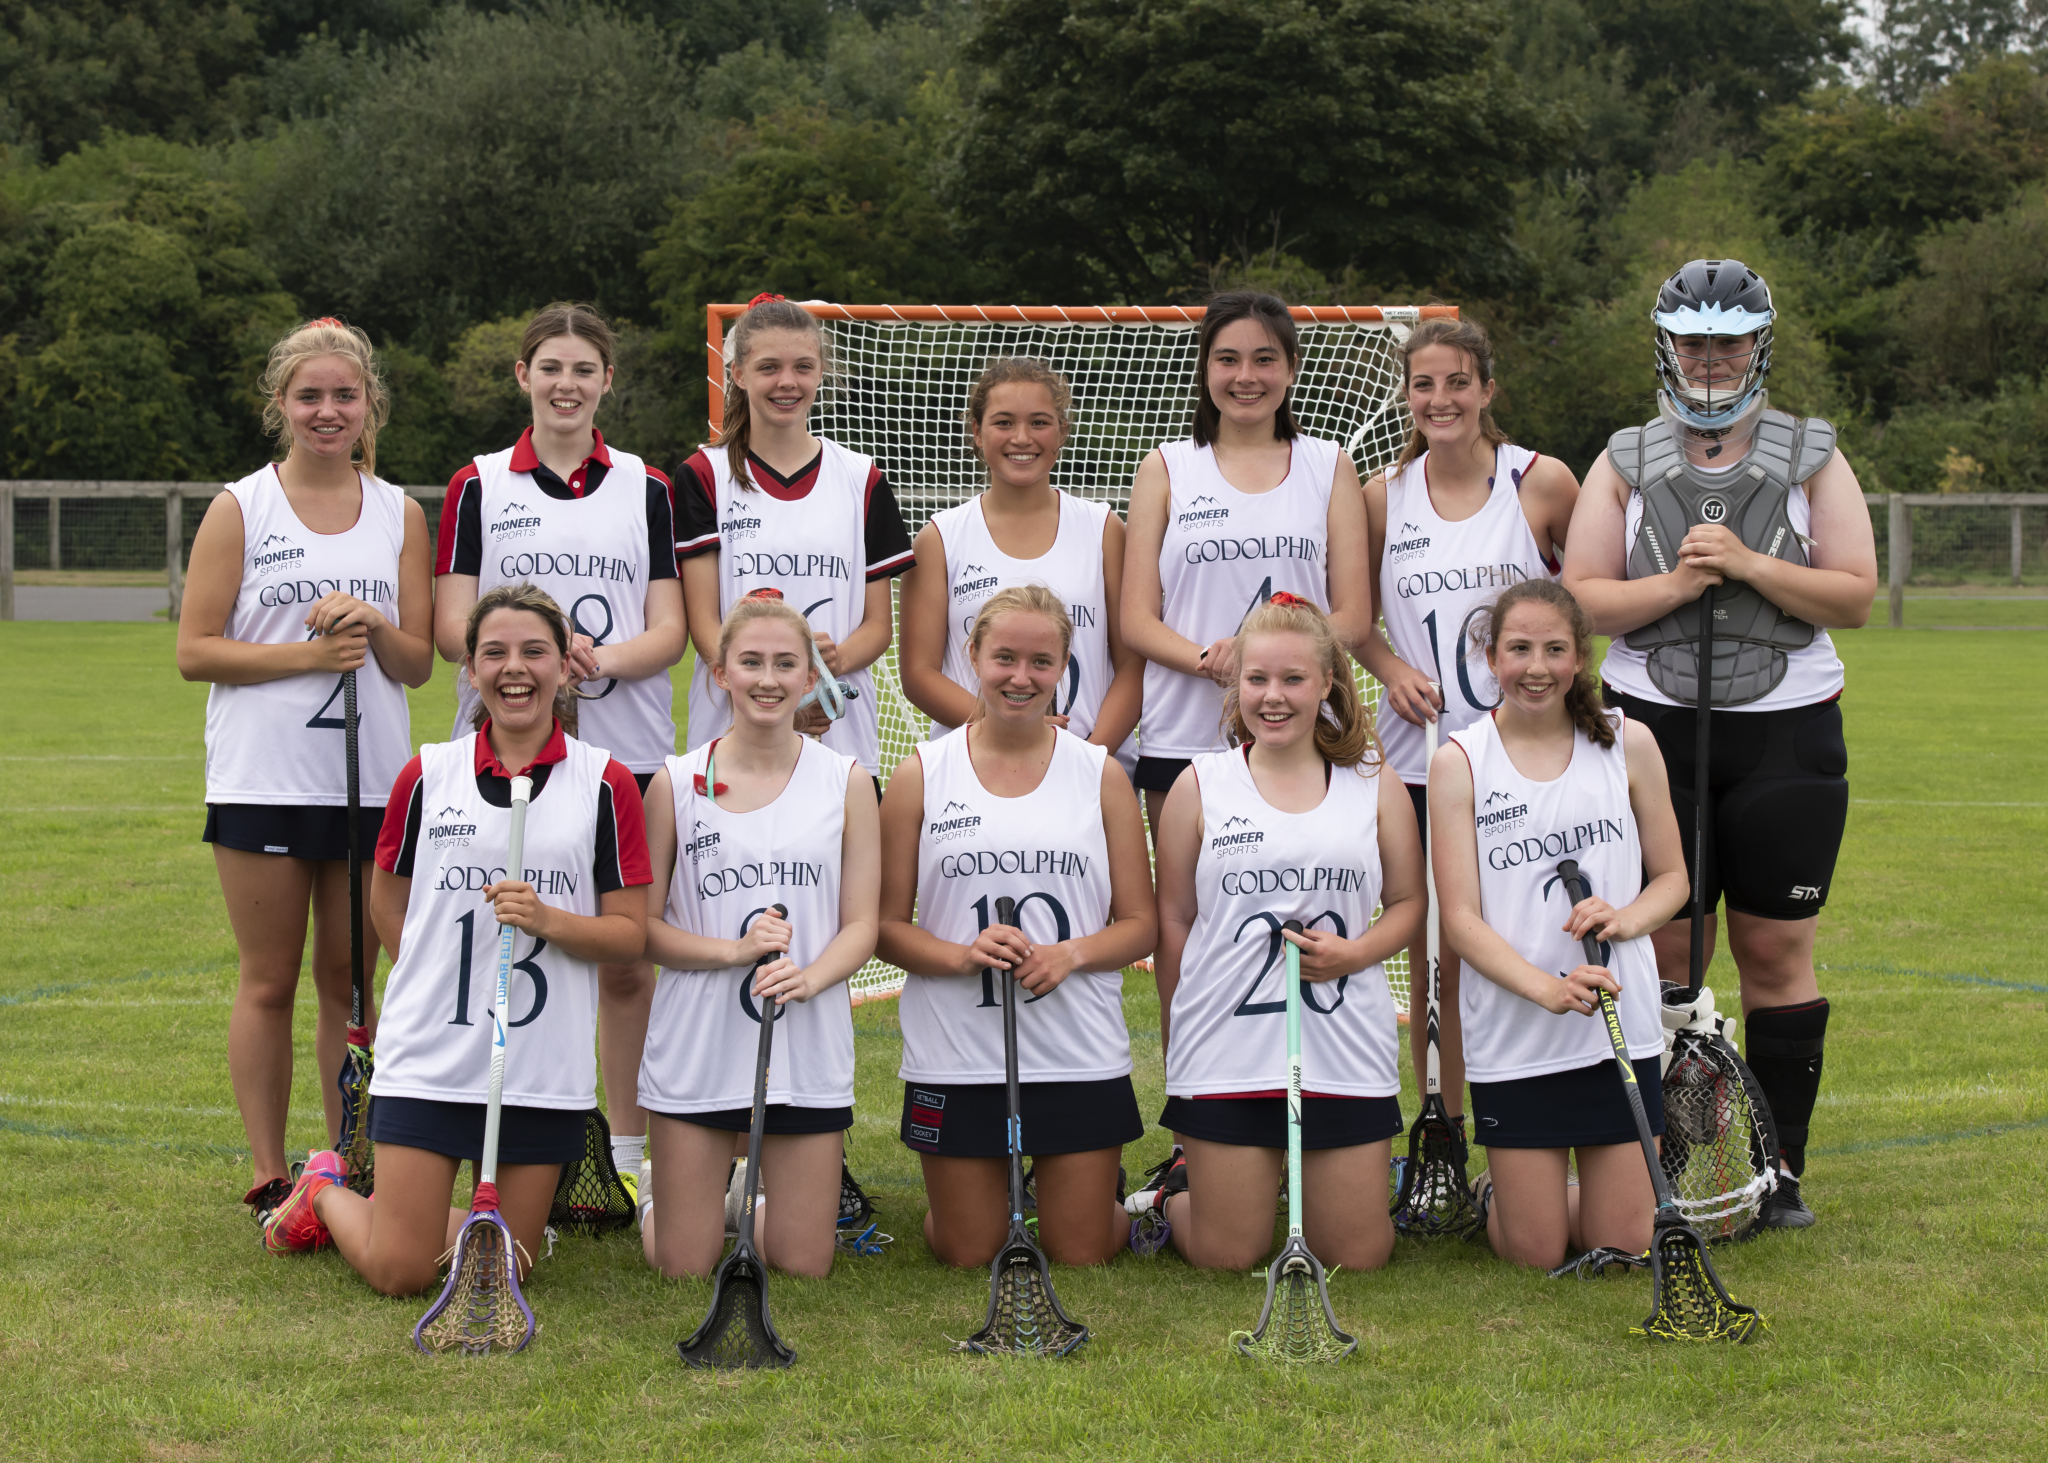 2021 09 04 Bath Lacrosse Eights Womens Champions Team Photo Without Labels